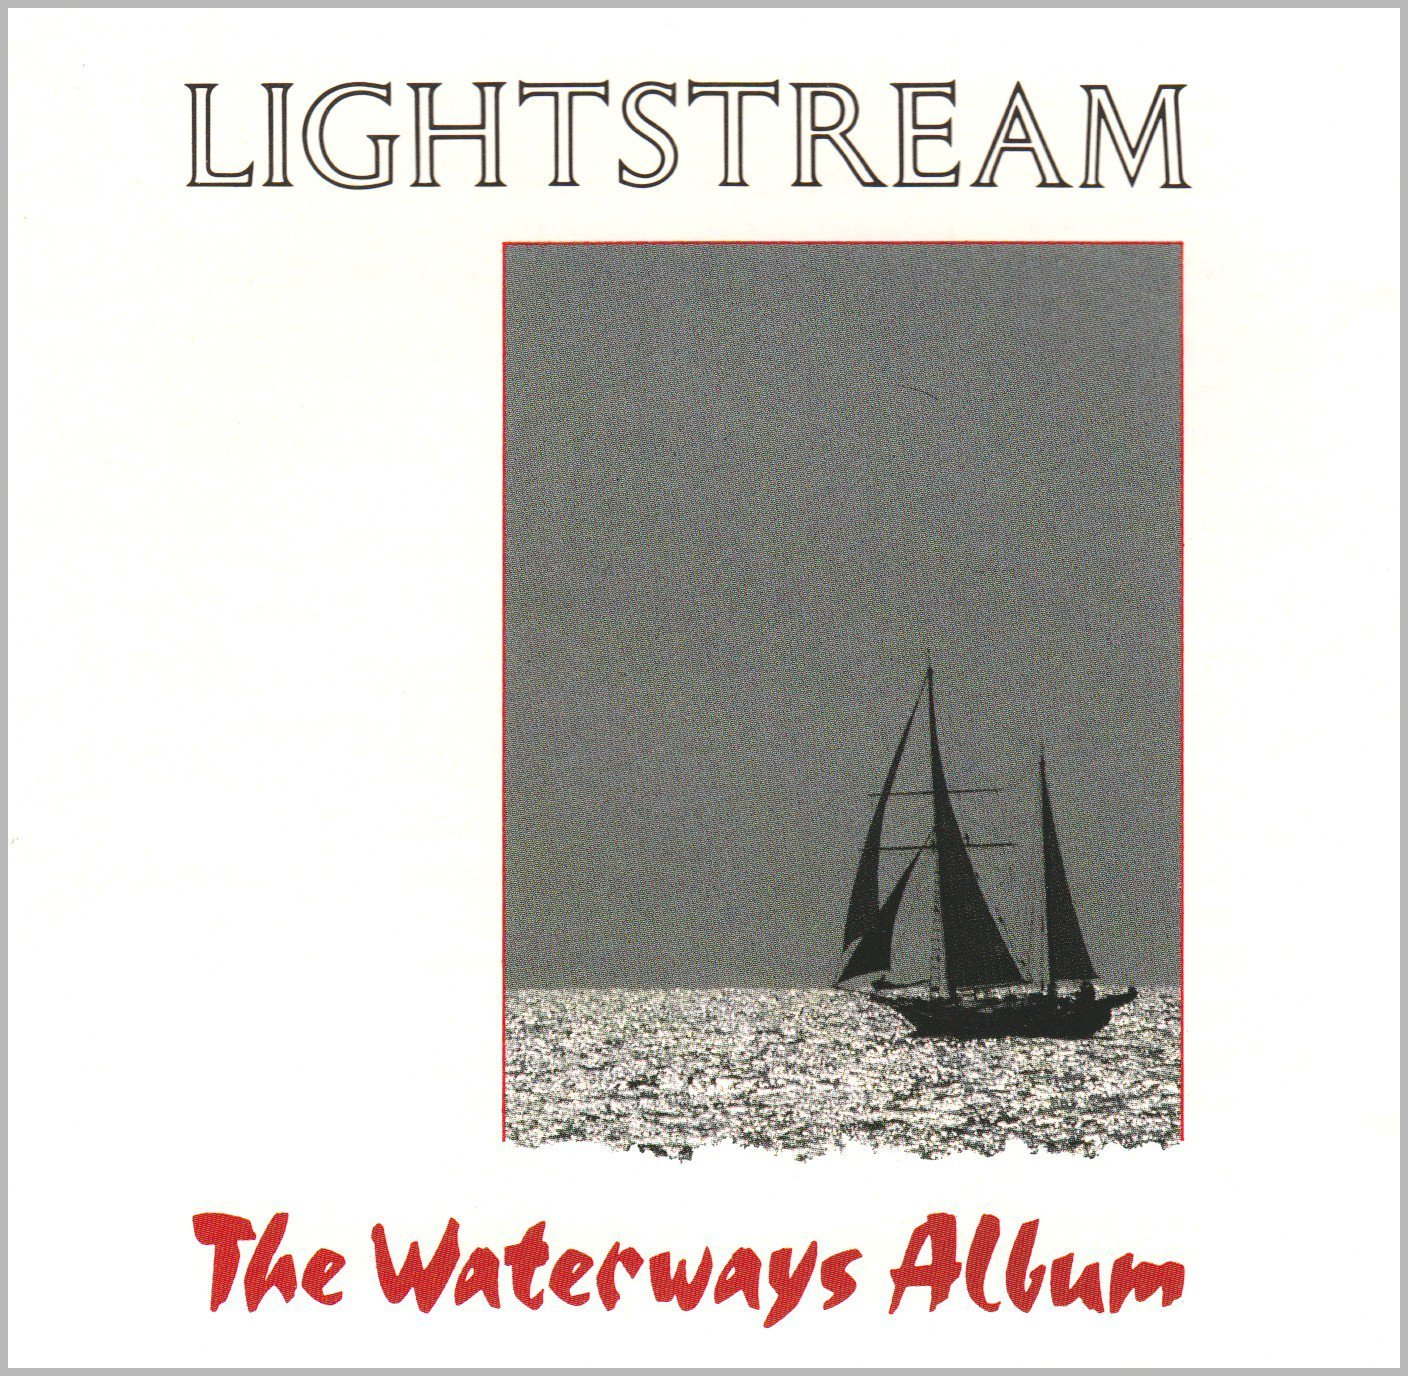 The Waterways Album